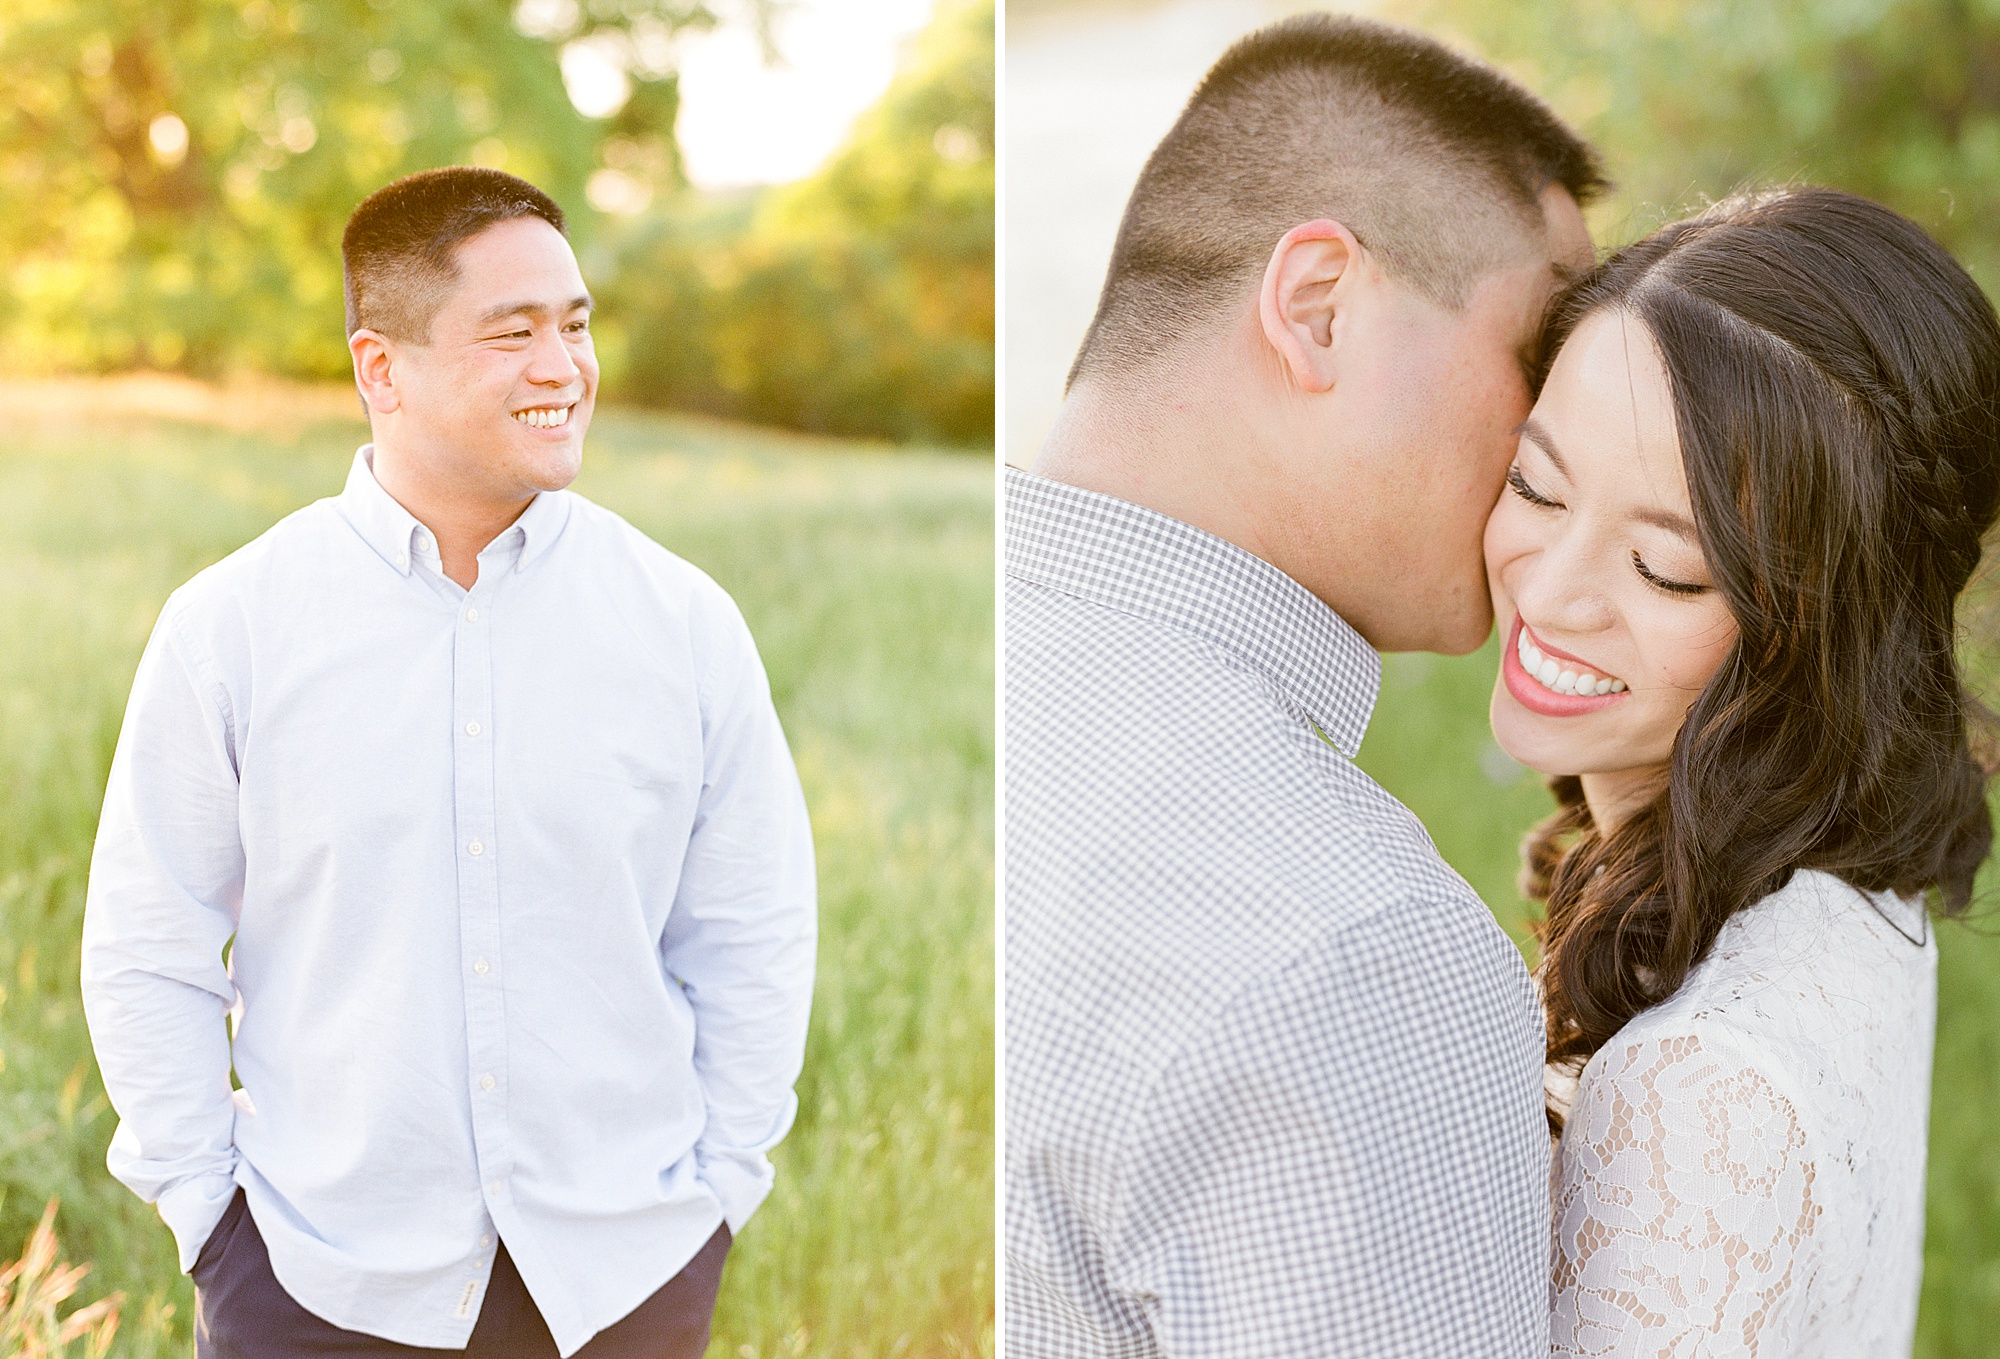 El Dorado Hills Engagement Session - Wendy and Danny - Ashley Baumgartner - Sacramento Wedding Photographer and Sacramento Wedding Photography - Bay Area Wedding Photographer_0018.jpg